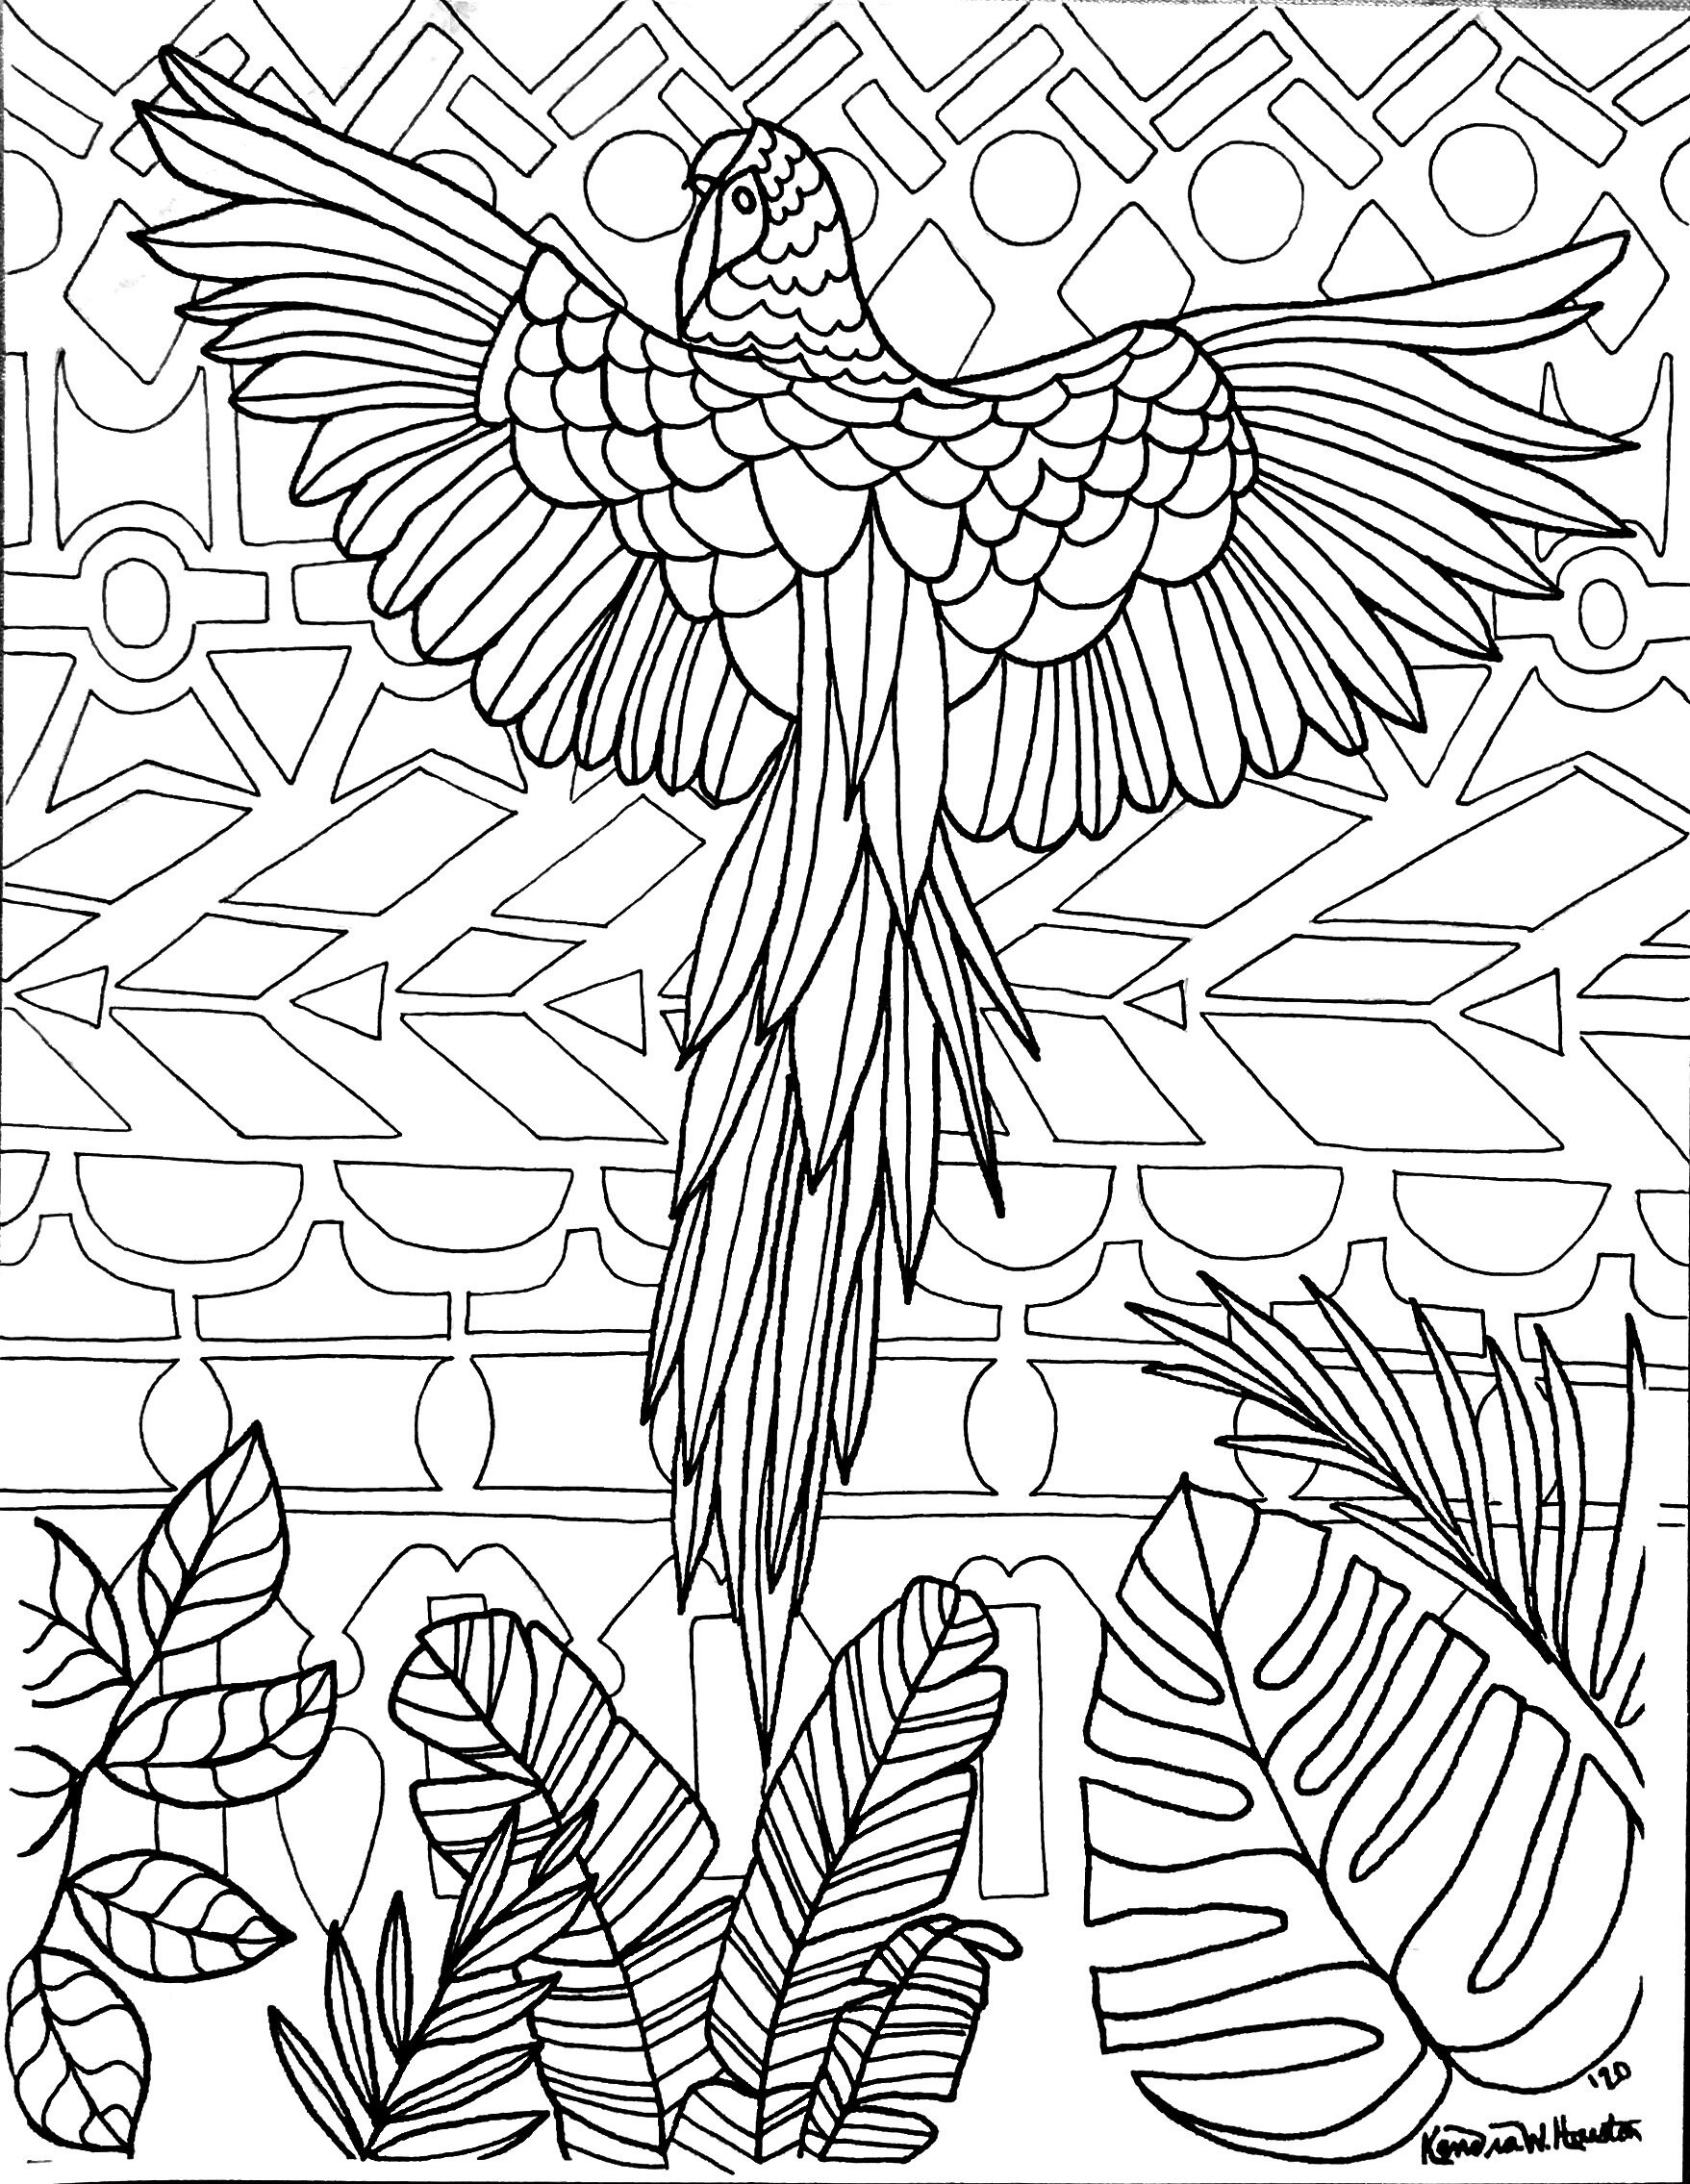 Parrot Adventure Coloring Pages: Adult And Kid — The Casual Reply